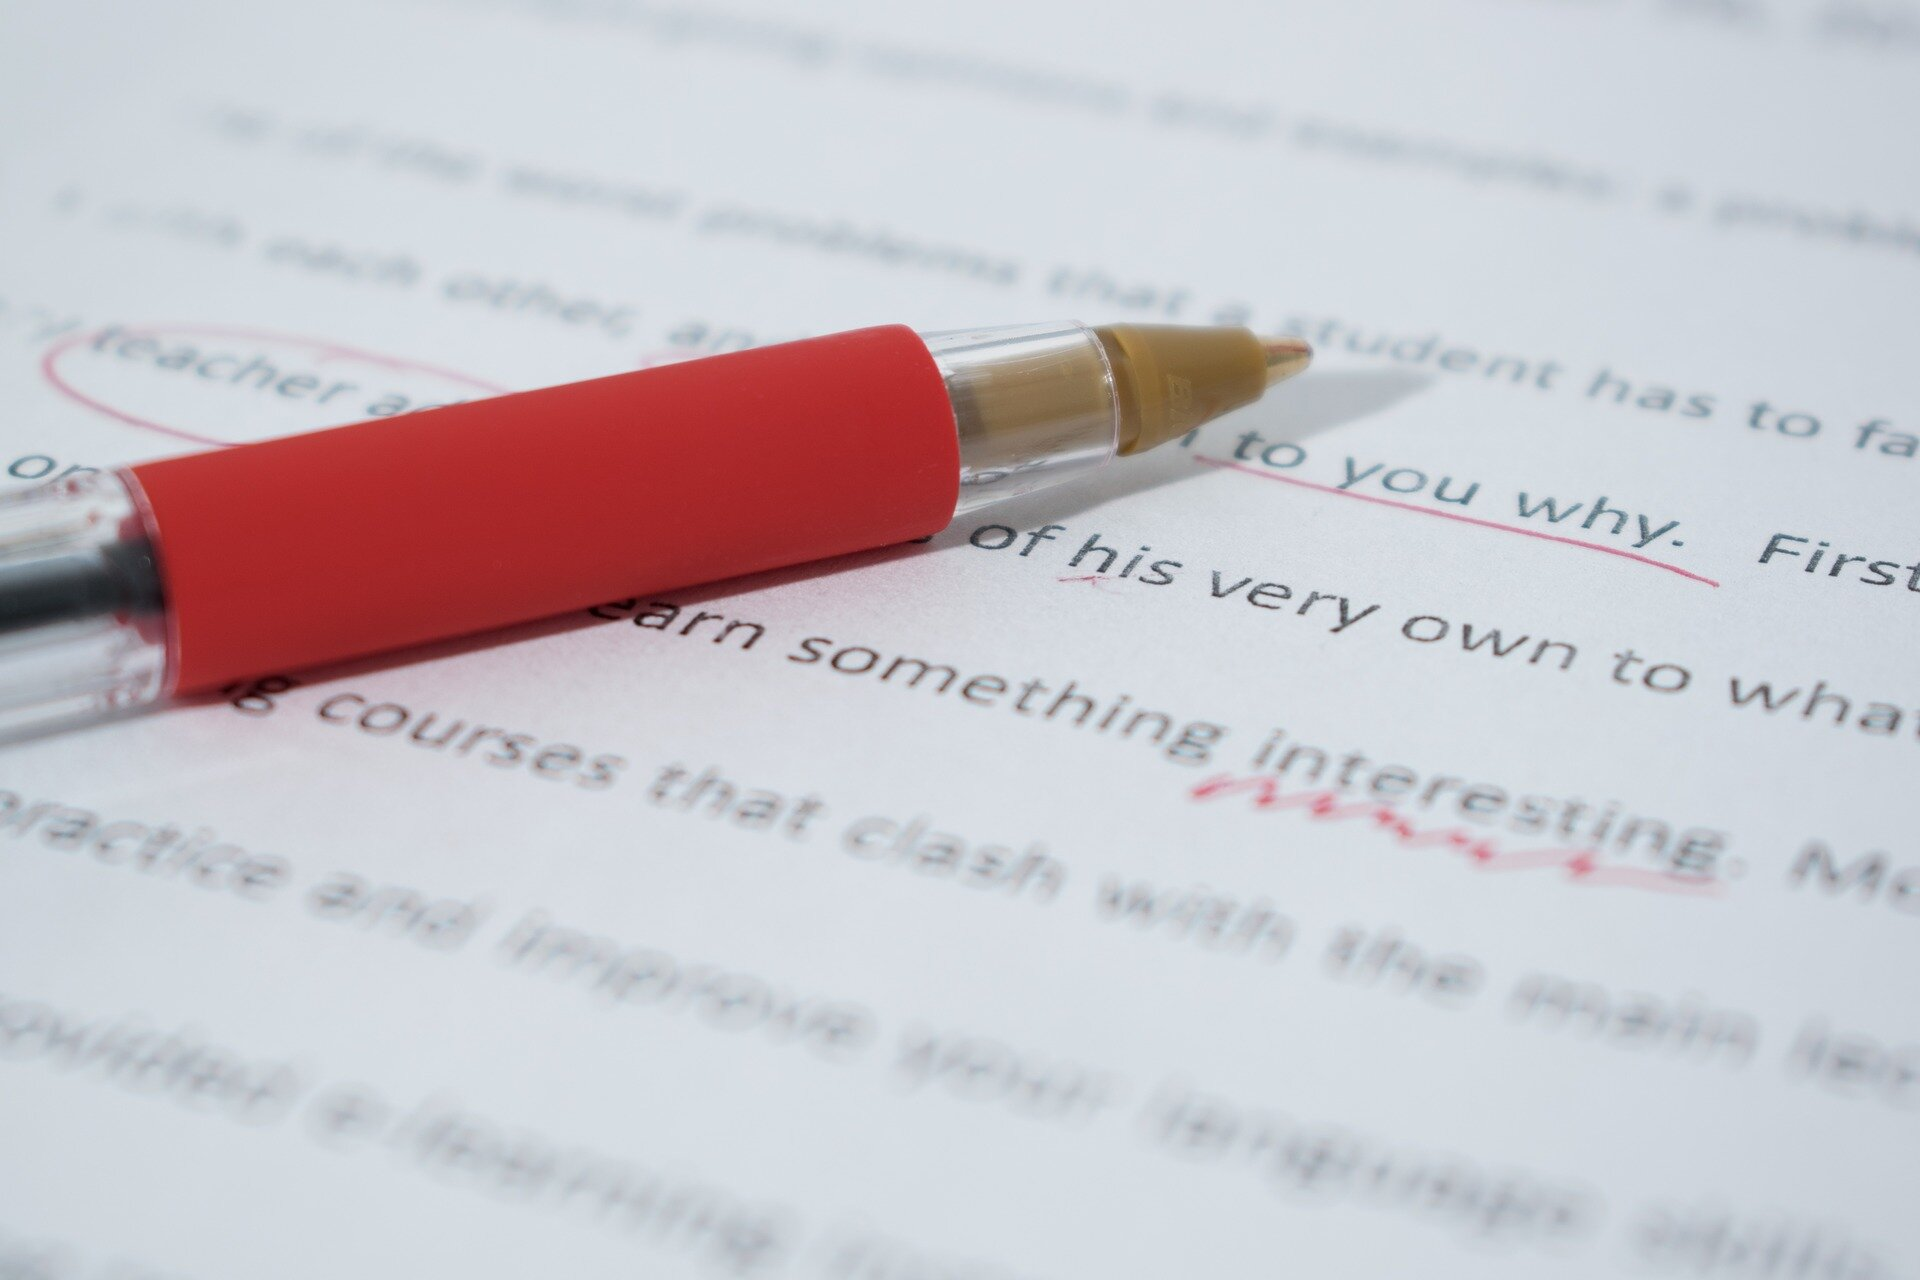 a red pen laying on an edited paper.